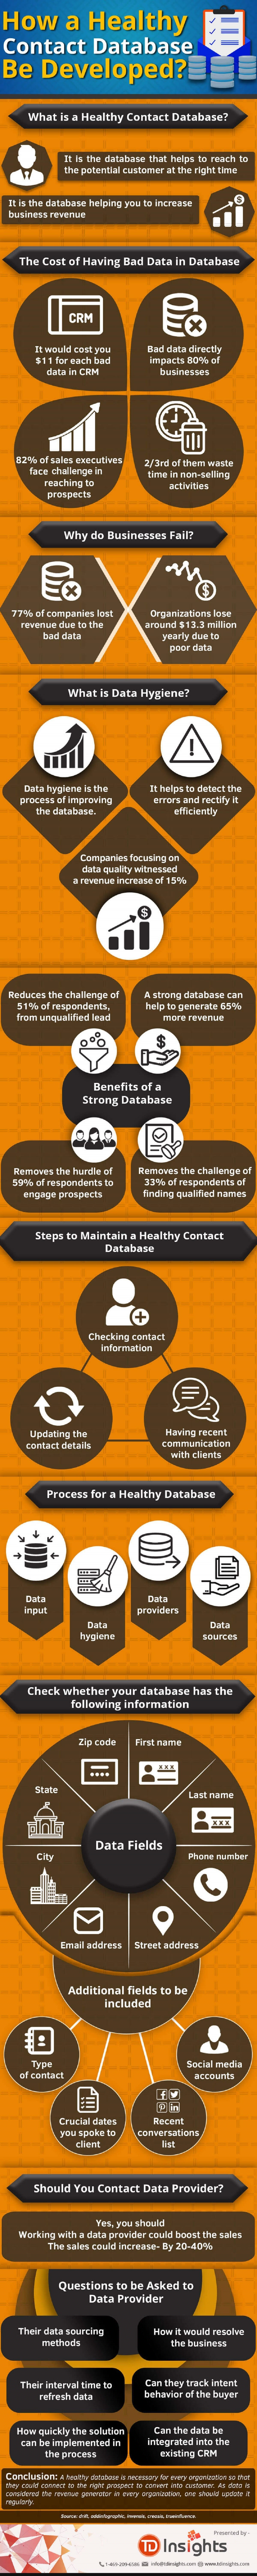 how-a-healthy-email-contact-database-be-developed-infographic